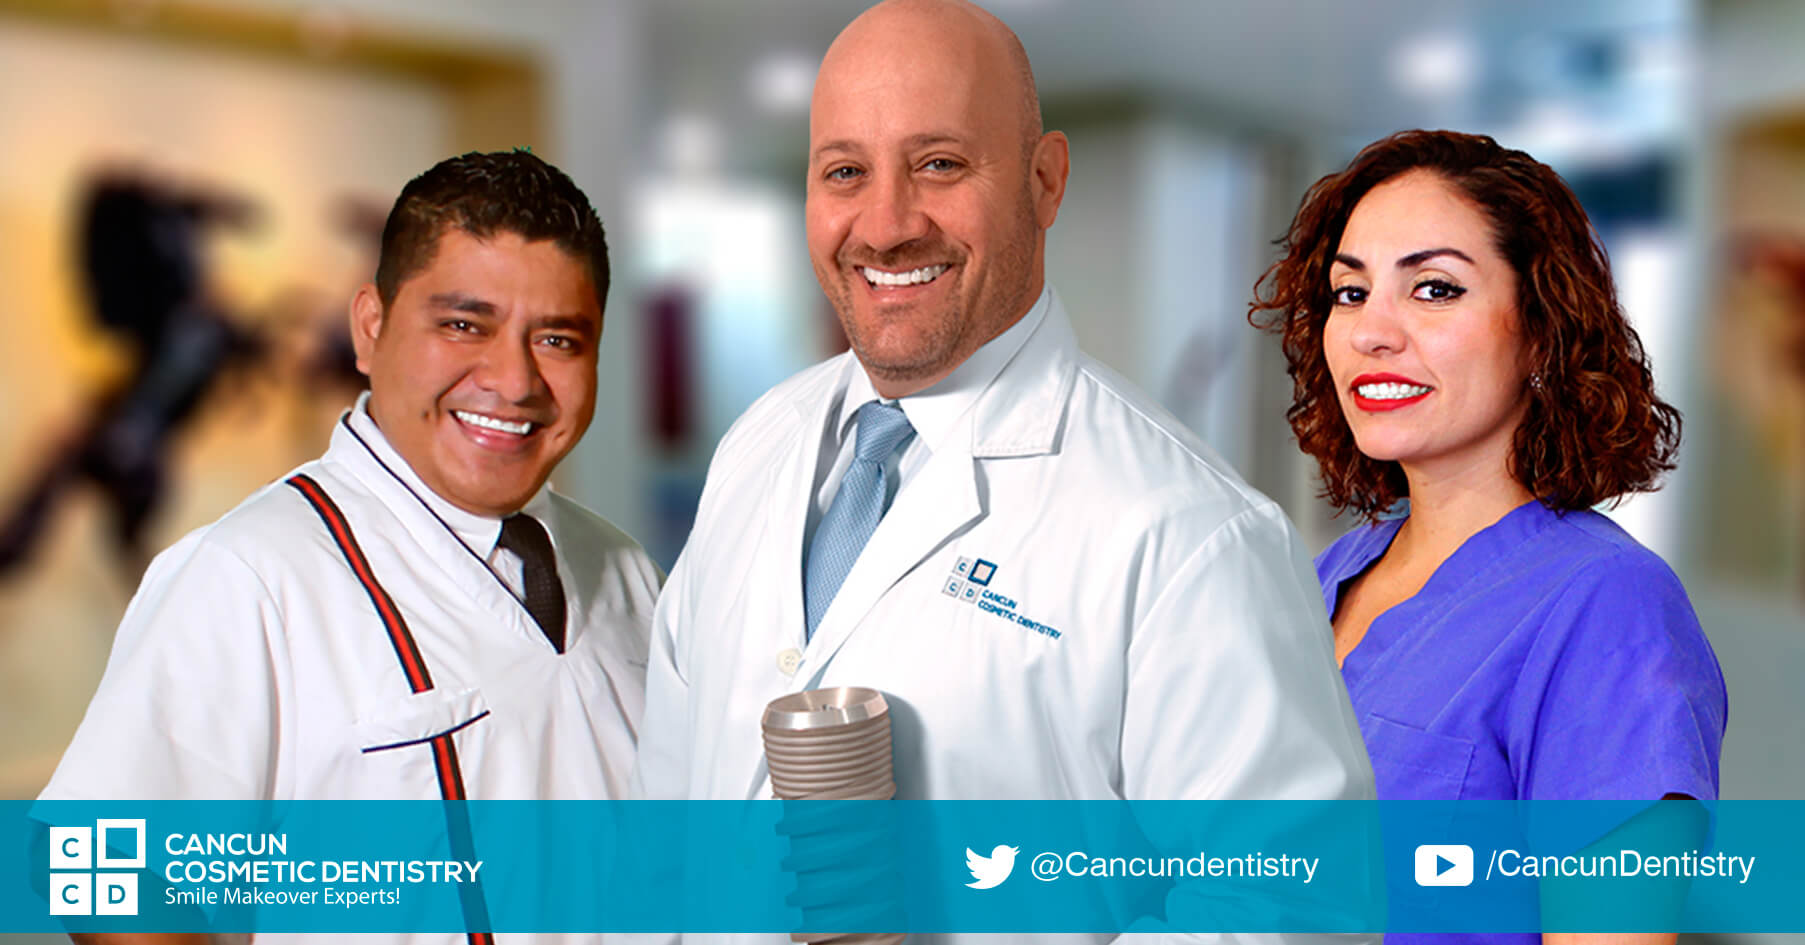 What can you expect on your dental implant treatment in Cancun?